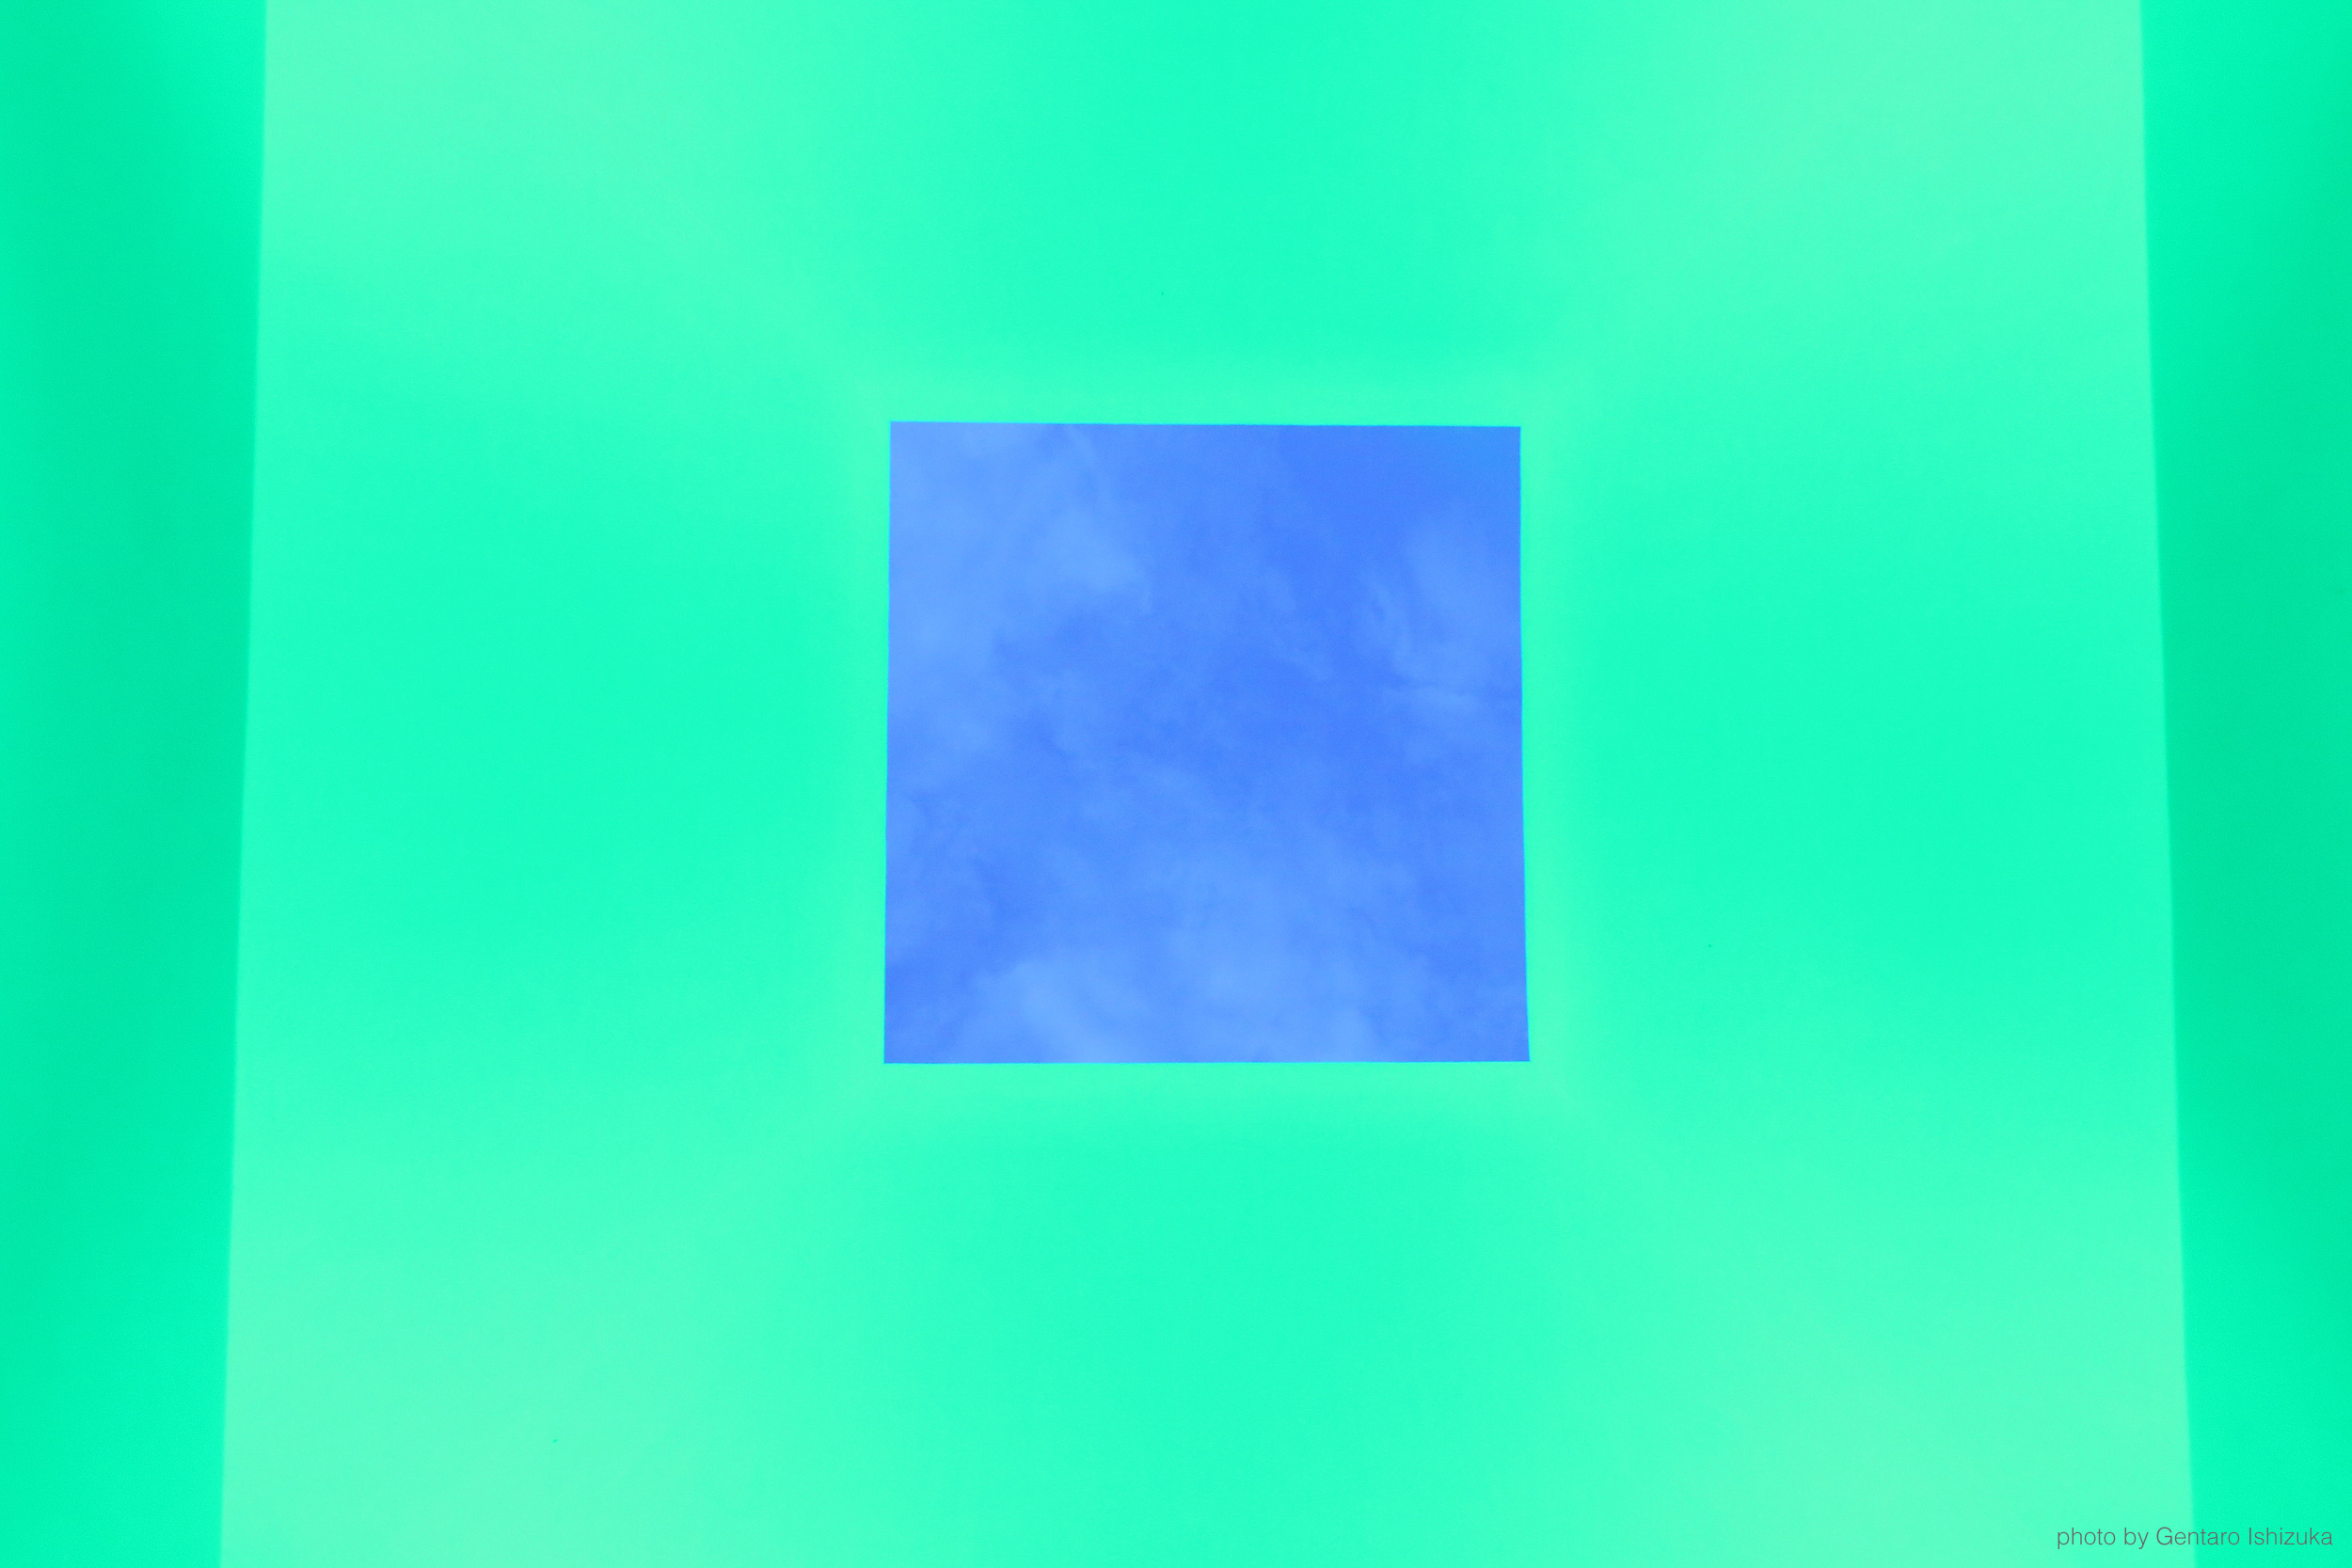 House of Light - James Turrell-19 copy.jpg